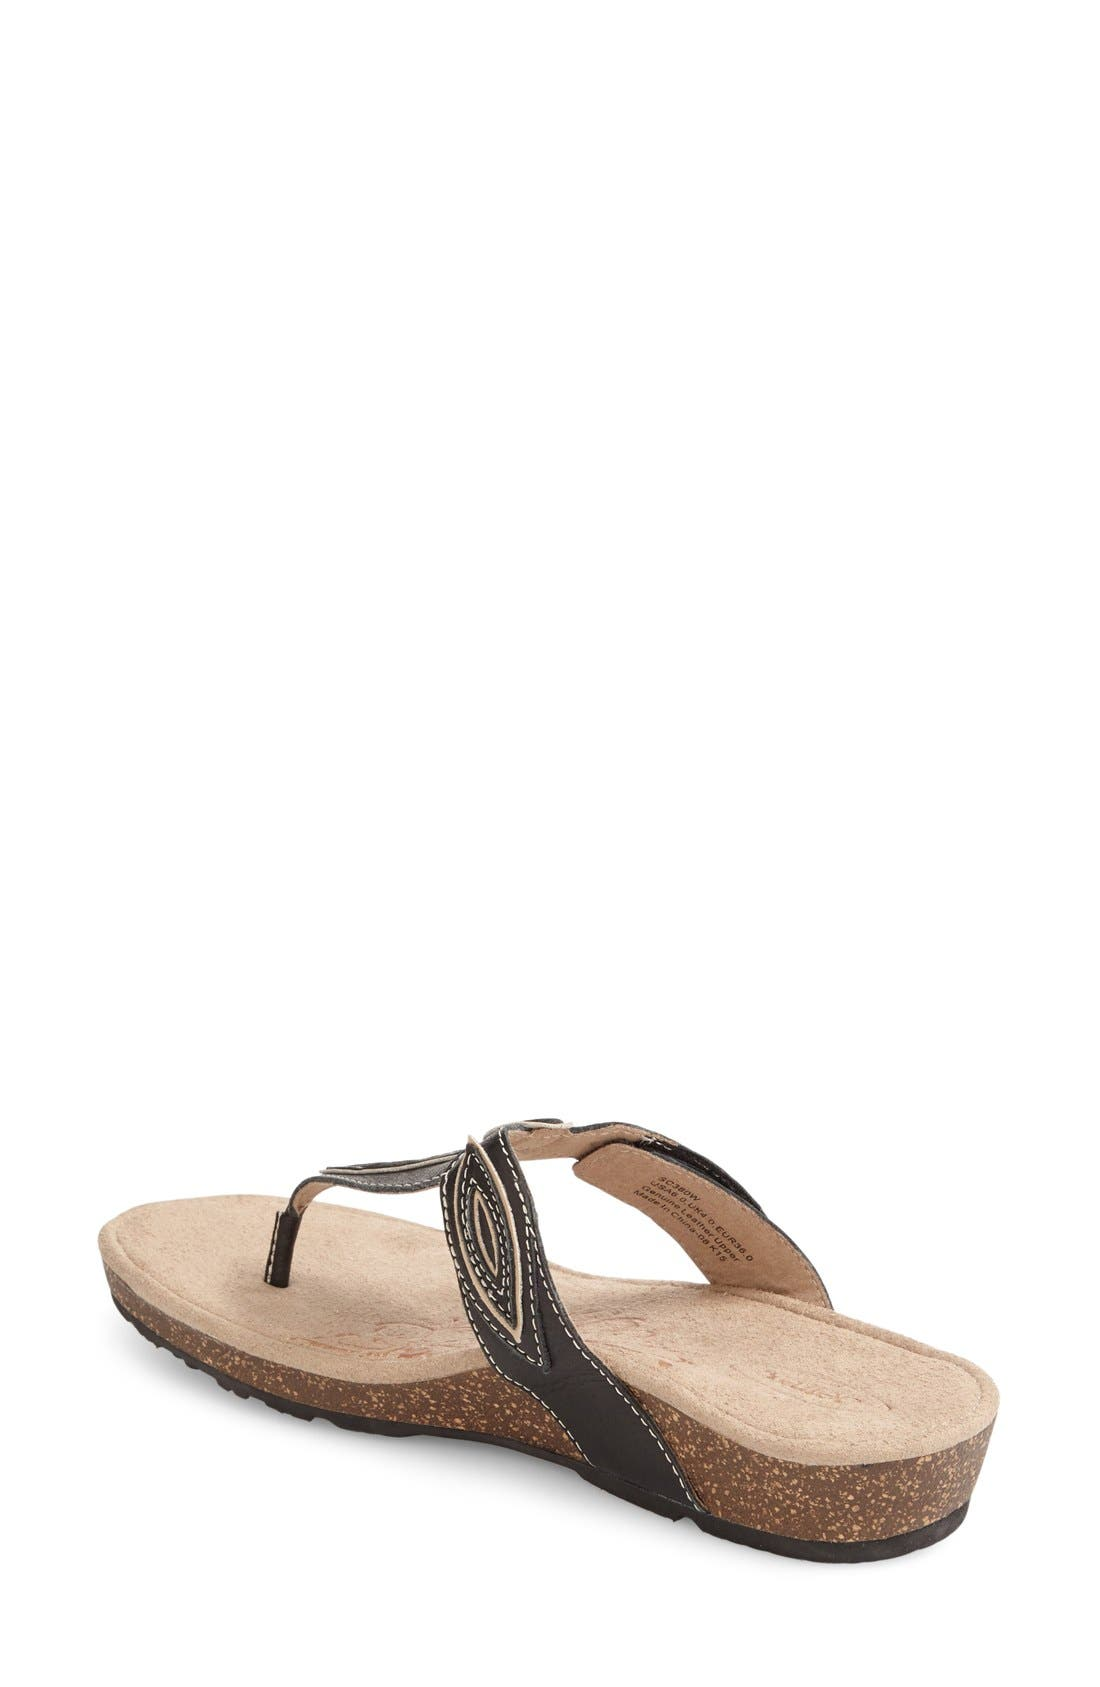 'Terri' Flip Flop,                             Alternate thumbnail 4, color,                             001